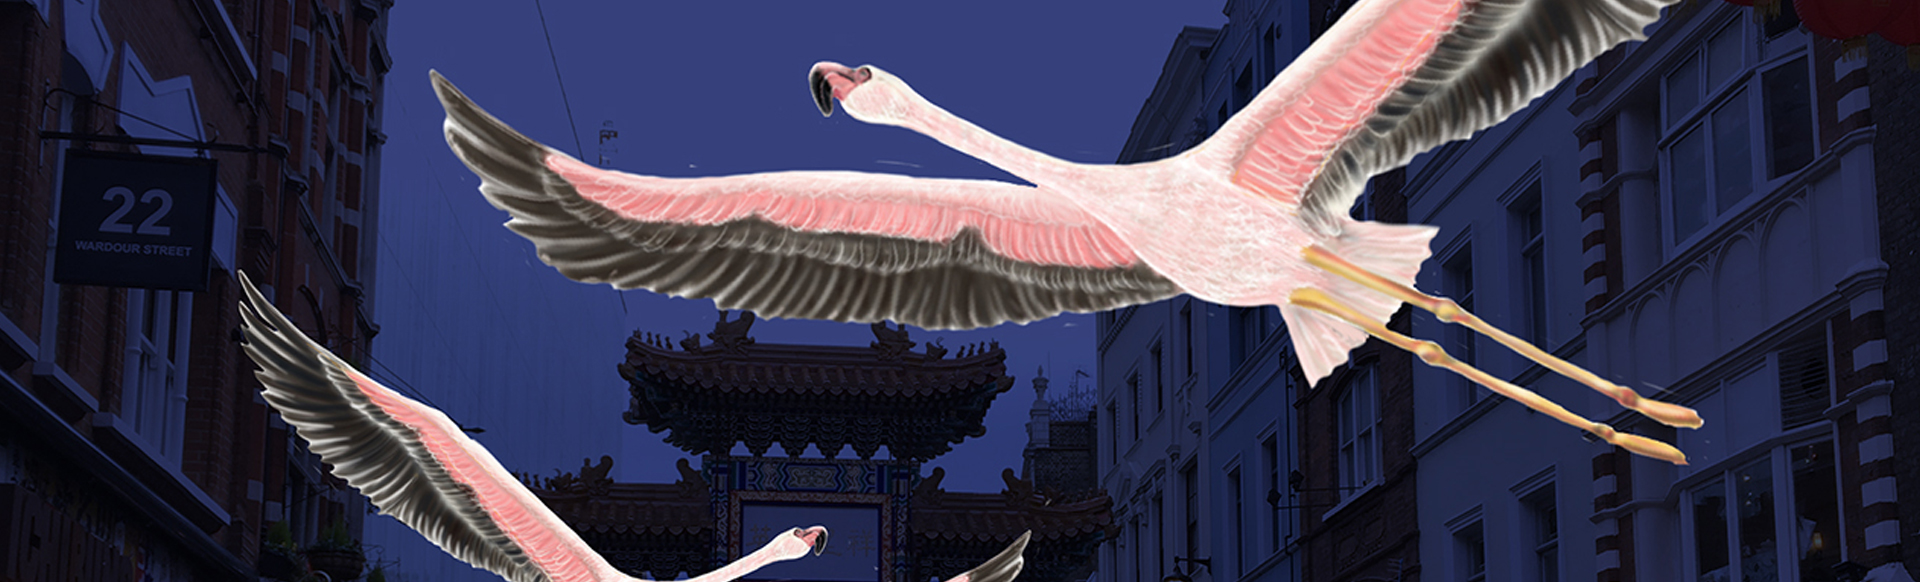 Flamingos Flyaway, Lumiere London 2018